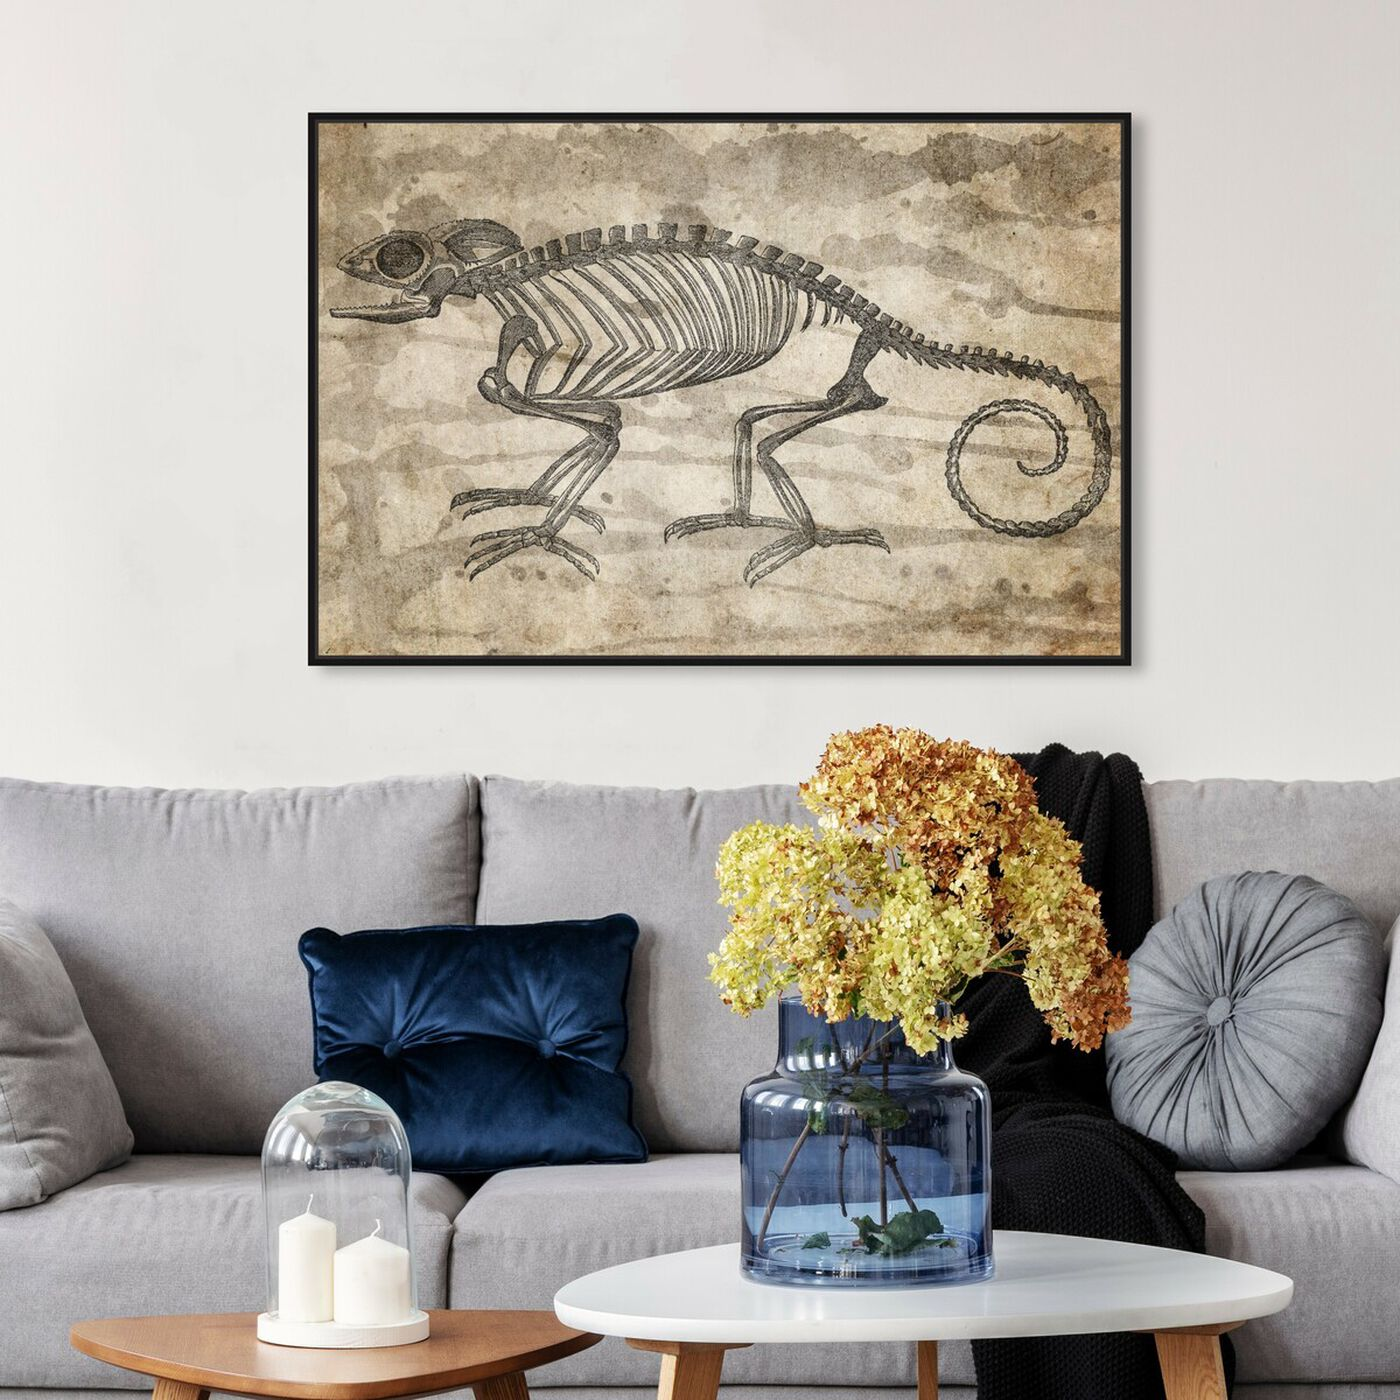 Hanging view of Karma Chameleon featuring animals and skeletons art.